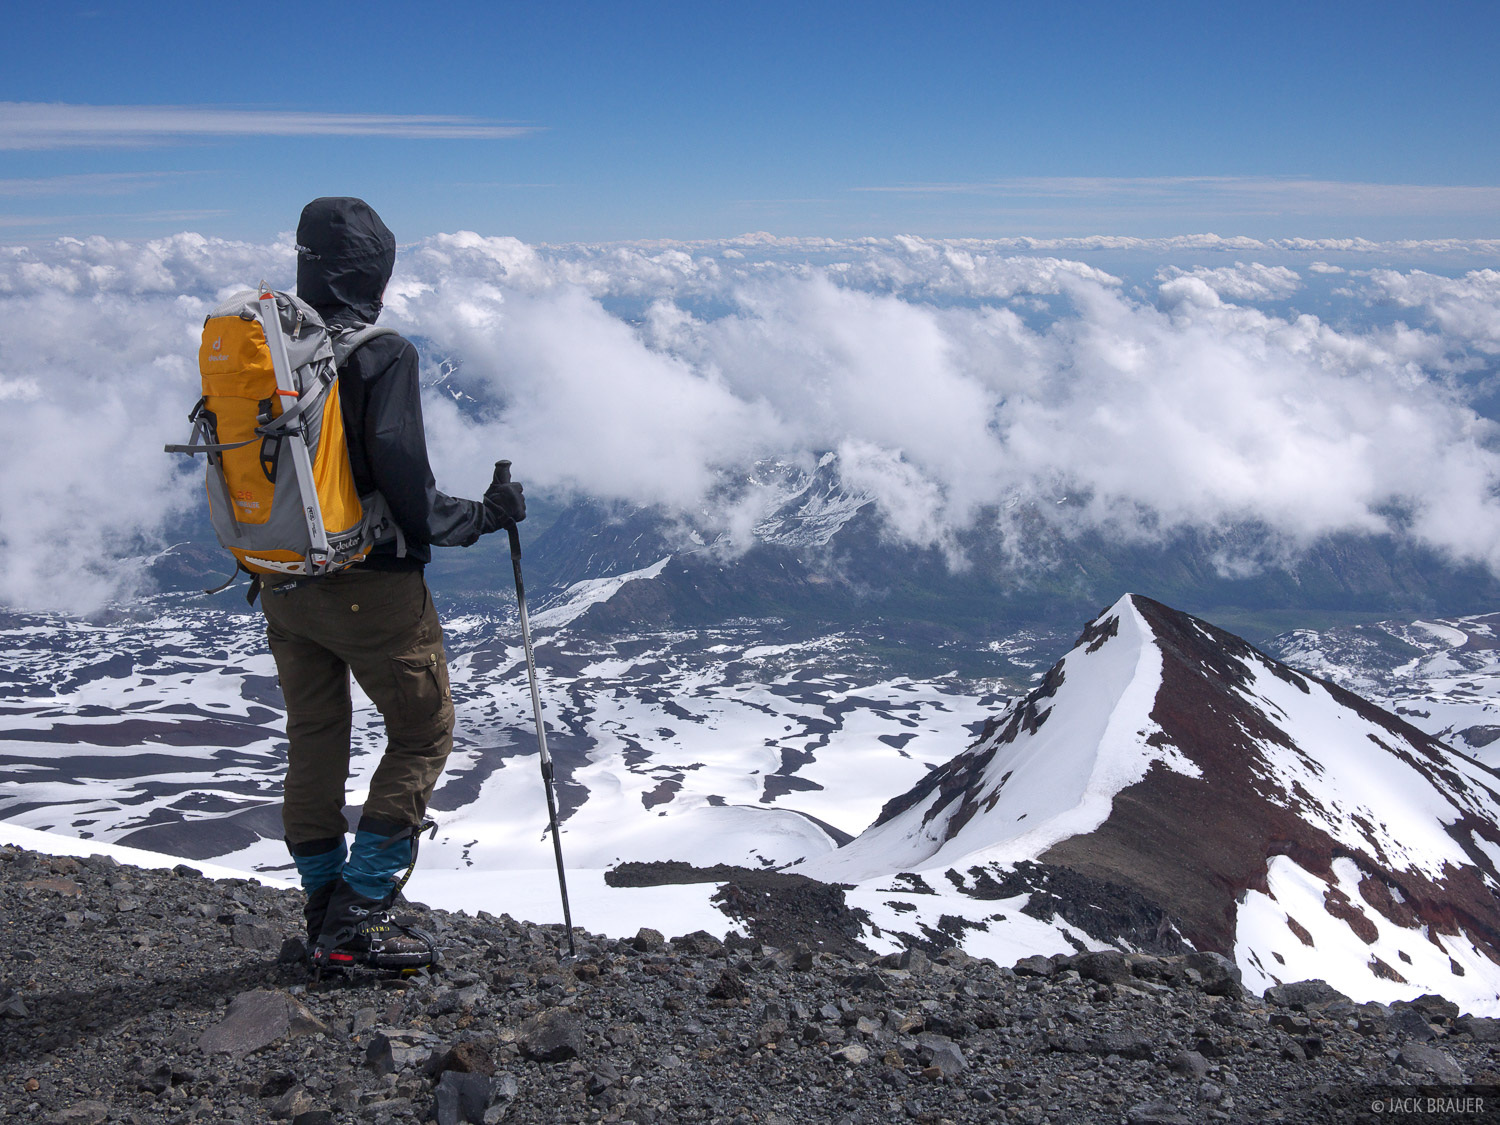 Claudia surveys the views above the clouds from the summit of Volcán Nevado.